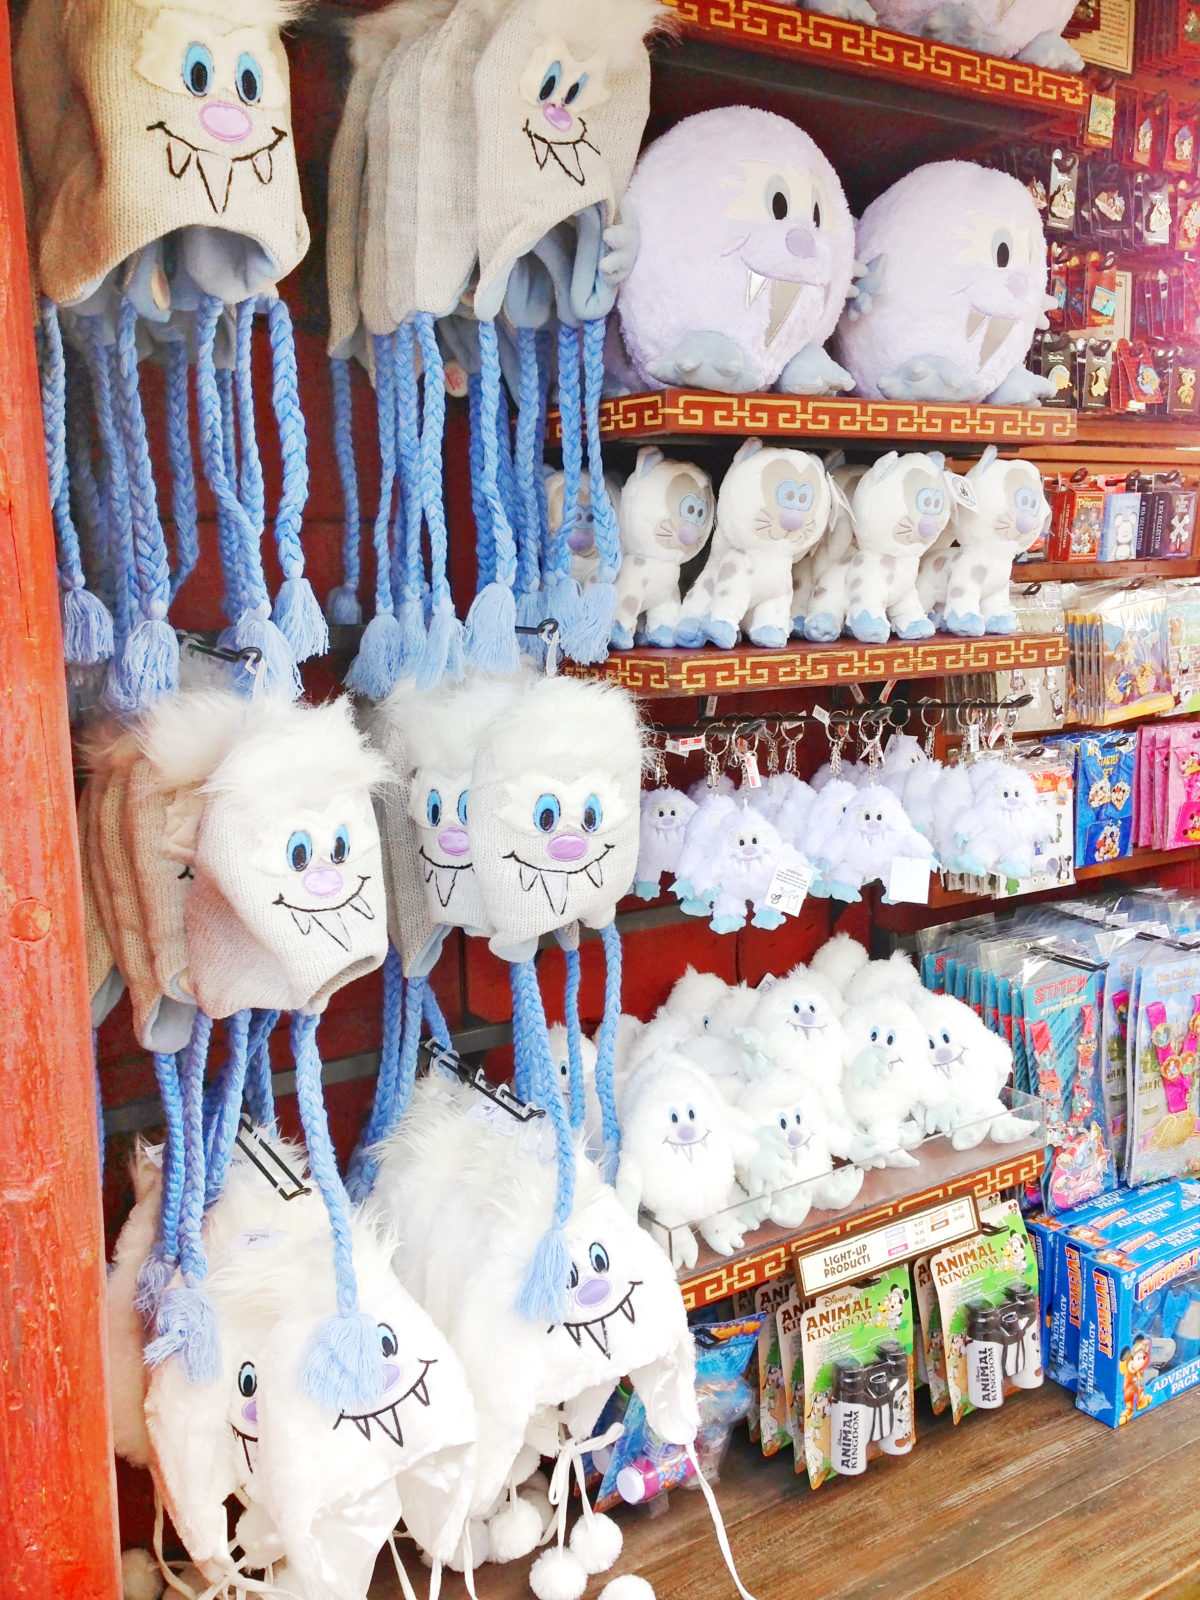 EXPEDITION EVEREST merchandise yeti hats and purses